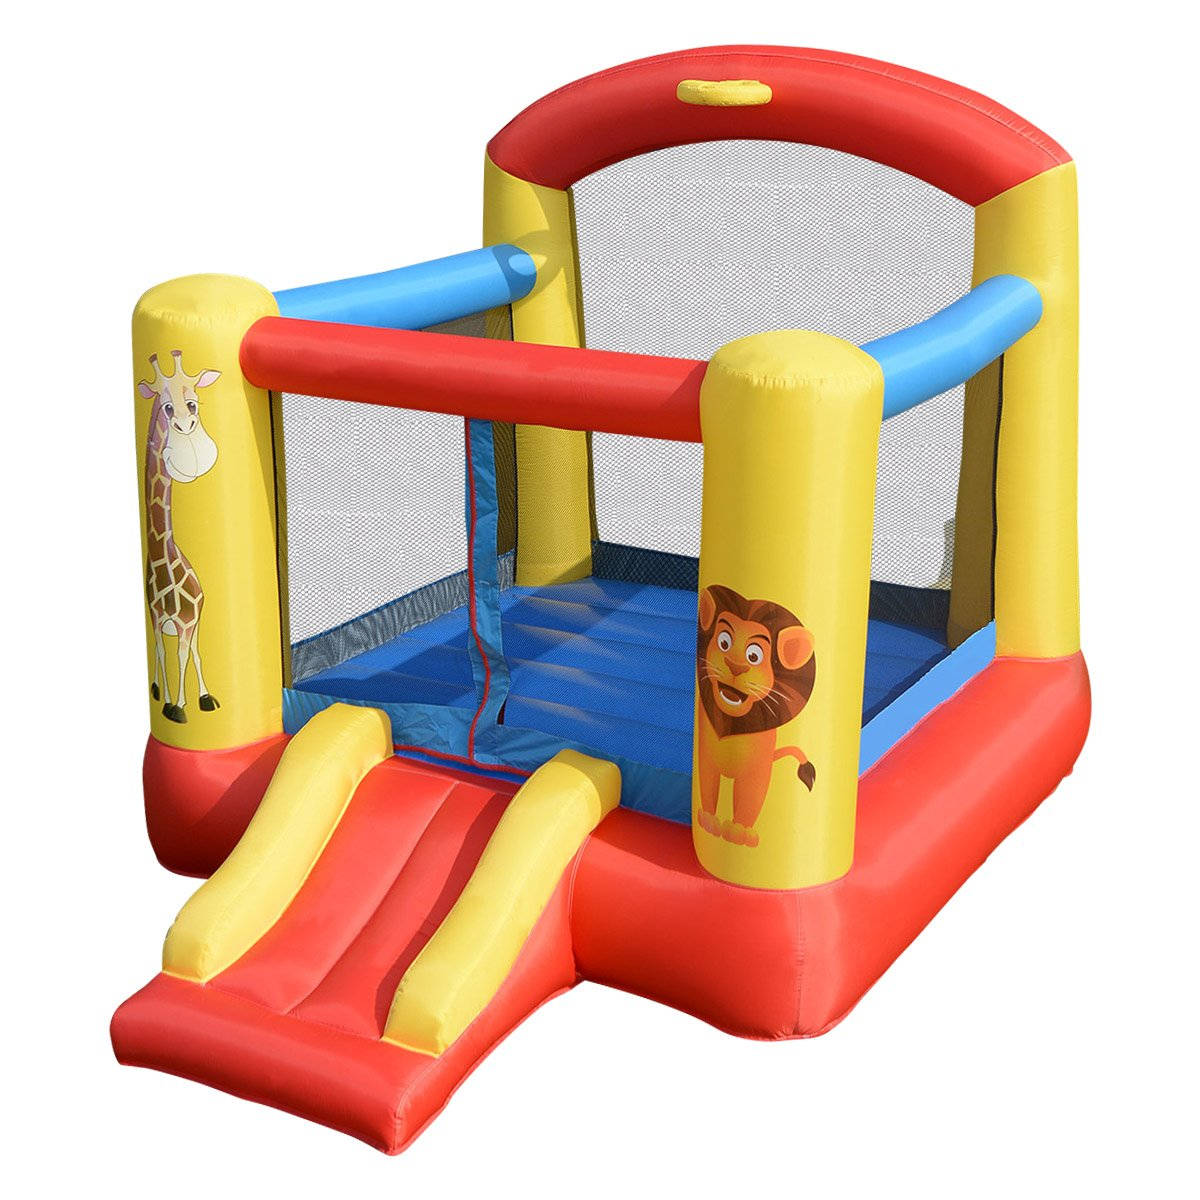 Costzon Inflatable Bounce House, Jump & Slide Bouncer with Oxford Mesh Wall, Ideal for Indoor & Outdoor Use, Including Oxford Carrying Bag, Repair Kit, Stakes (Without Blower)